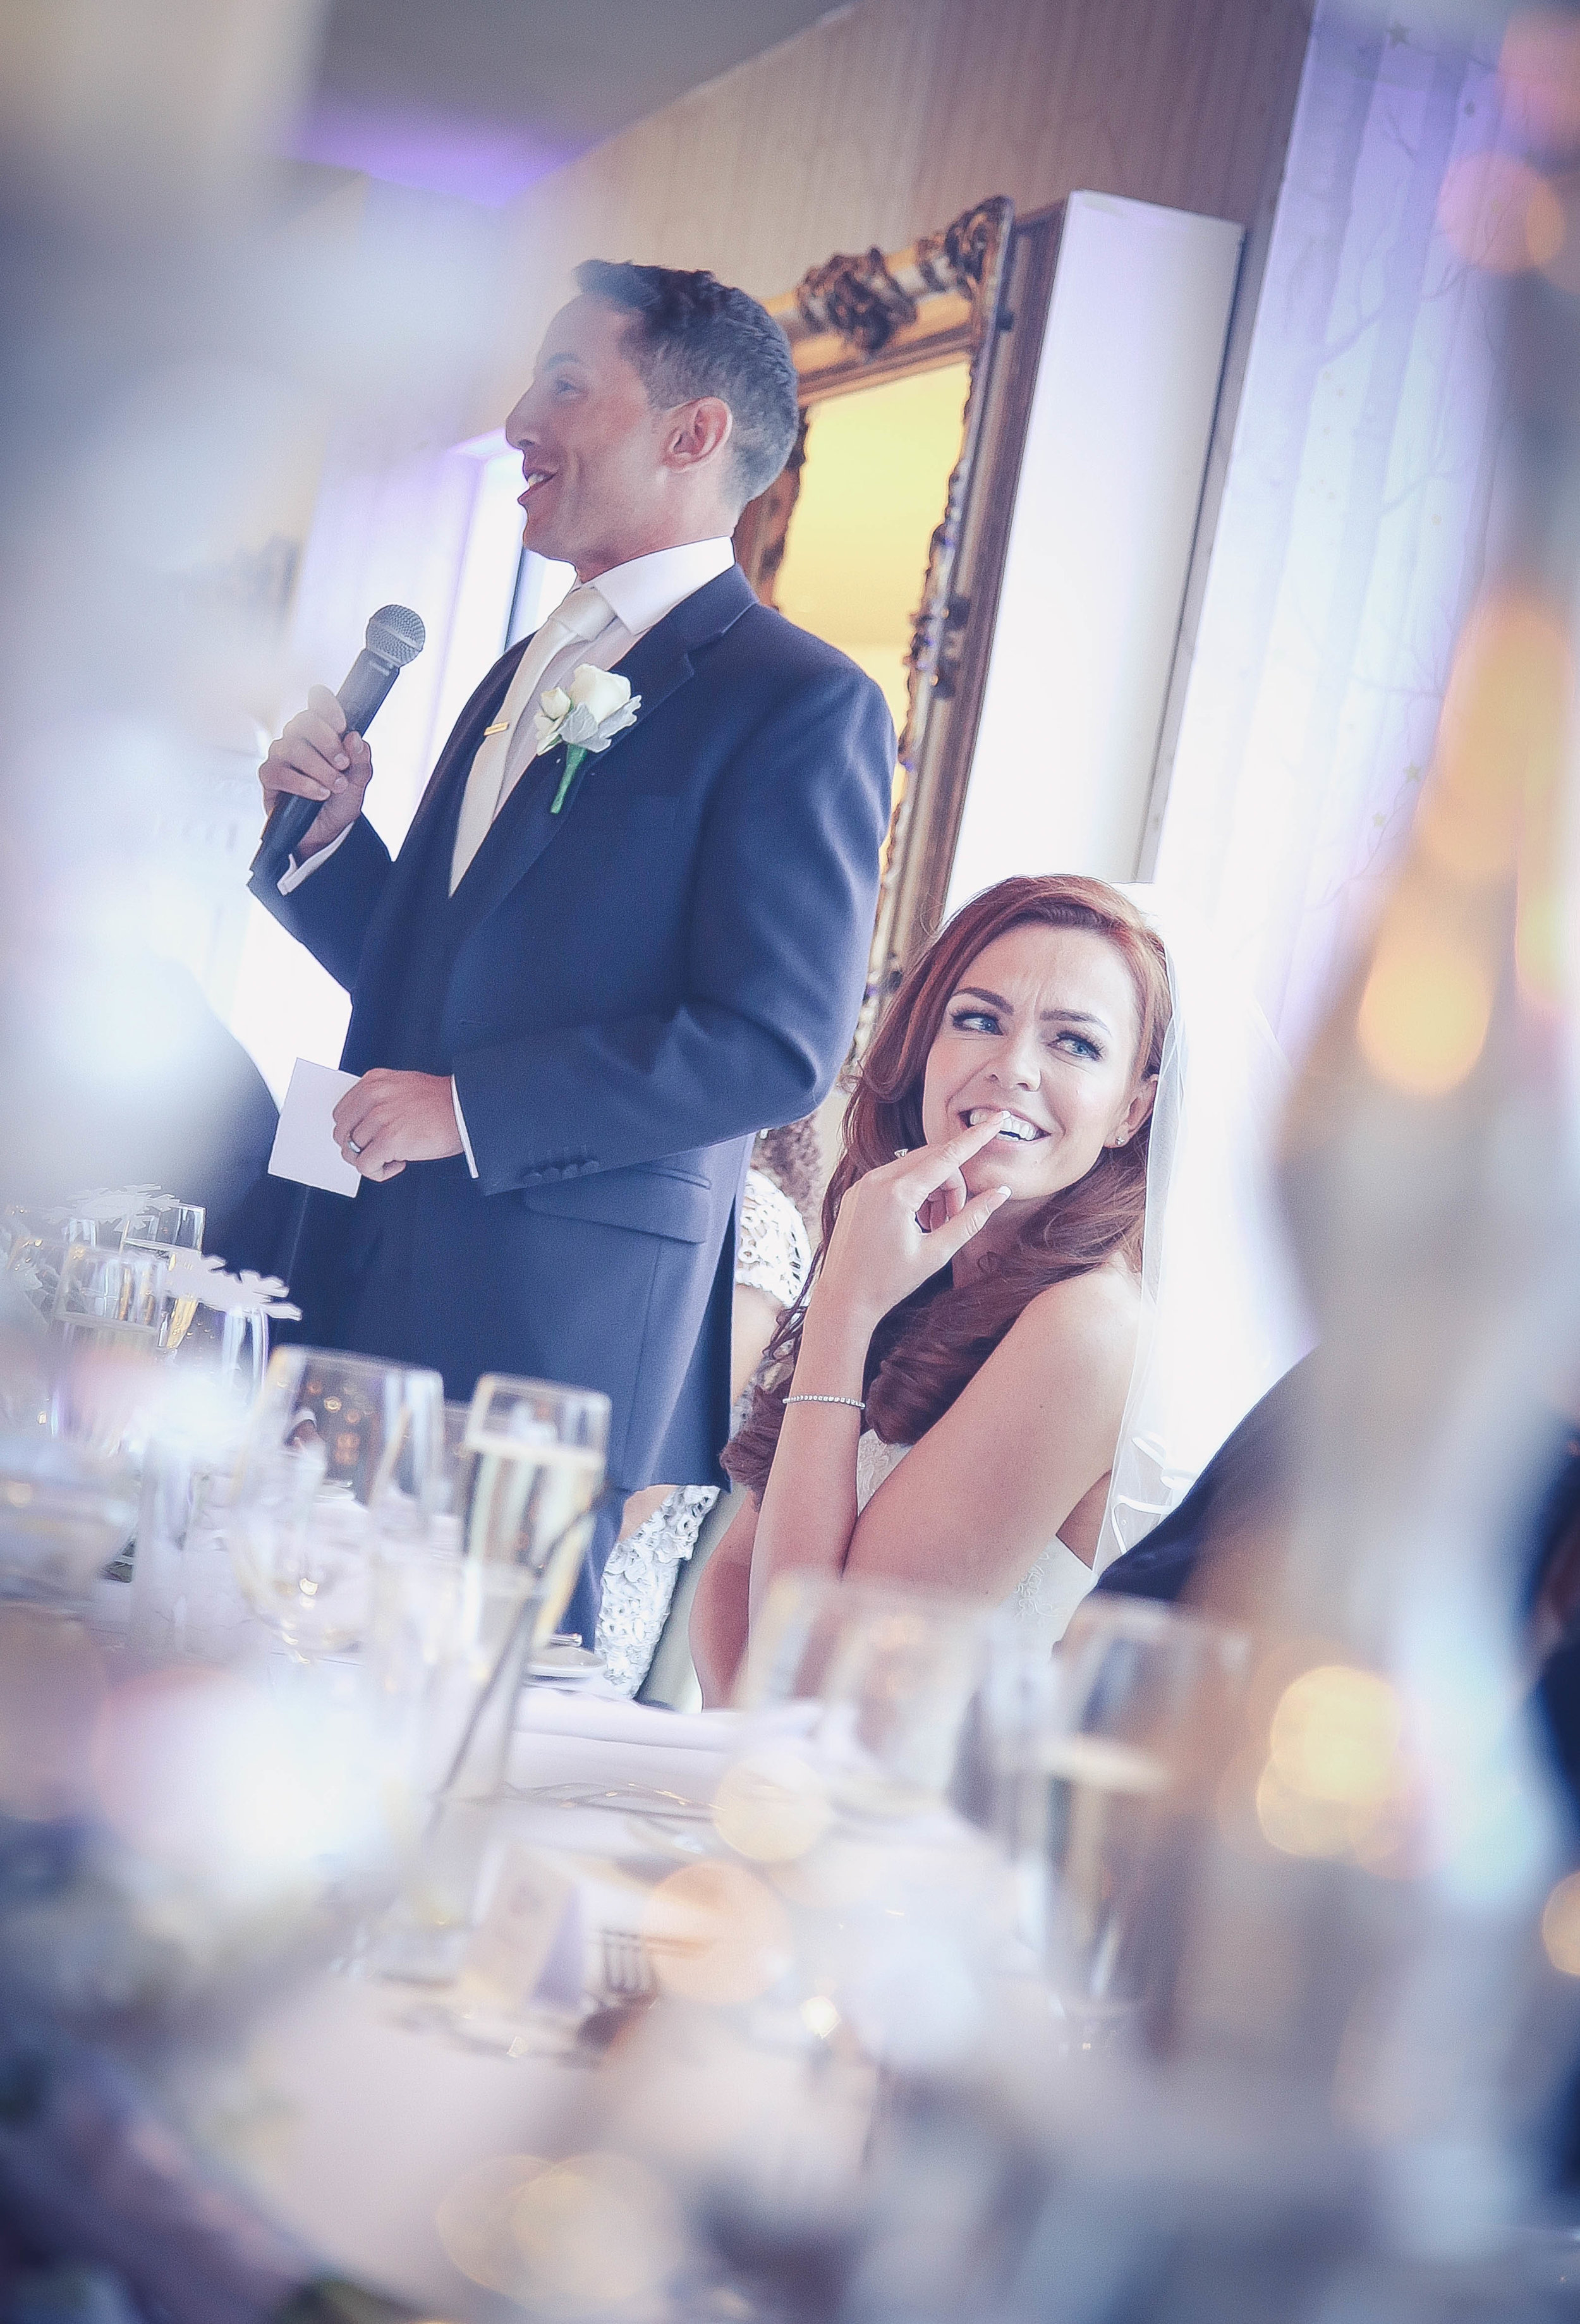 Weddings at the shankly hotel liverpool-129.jpg